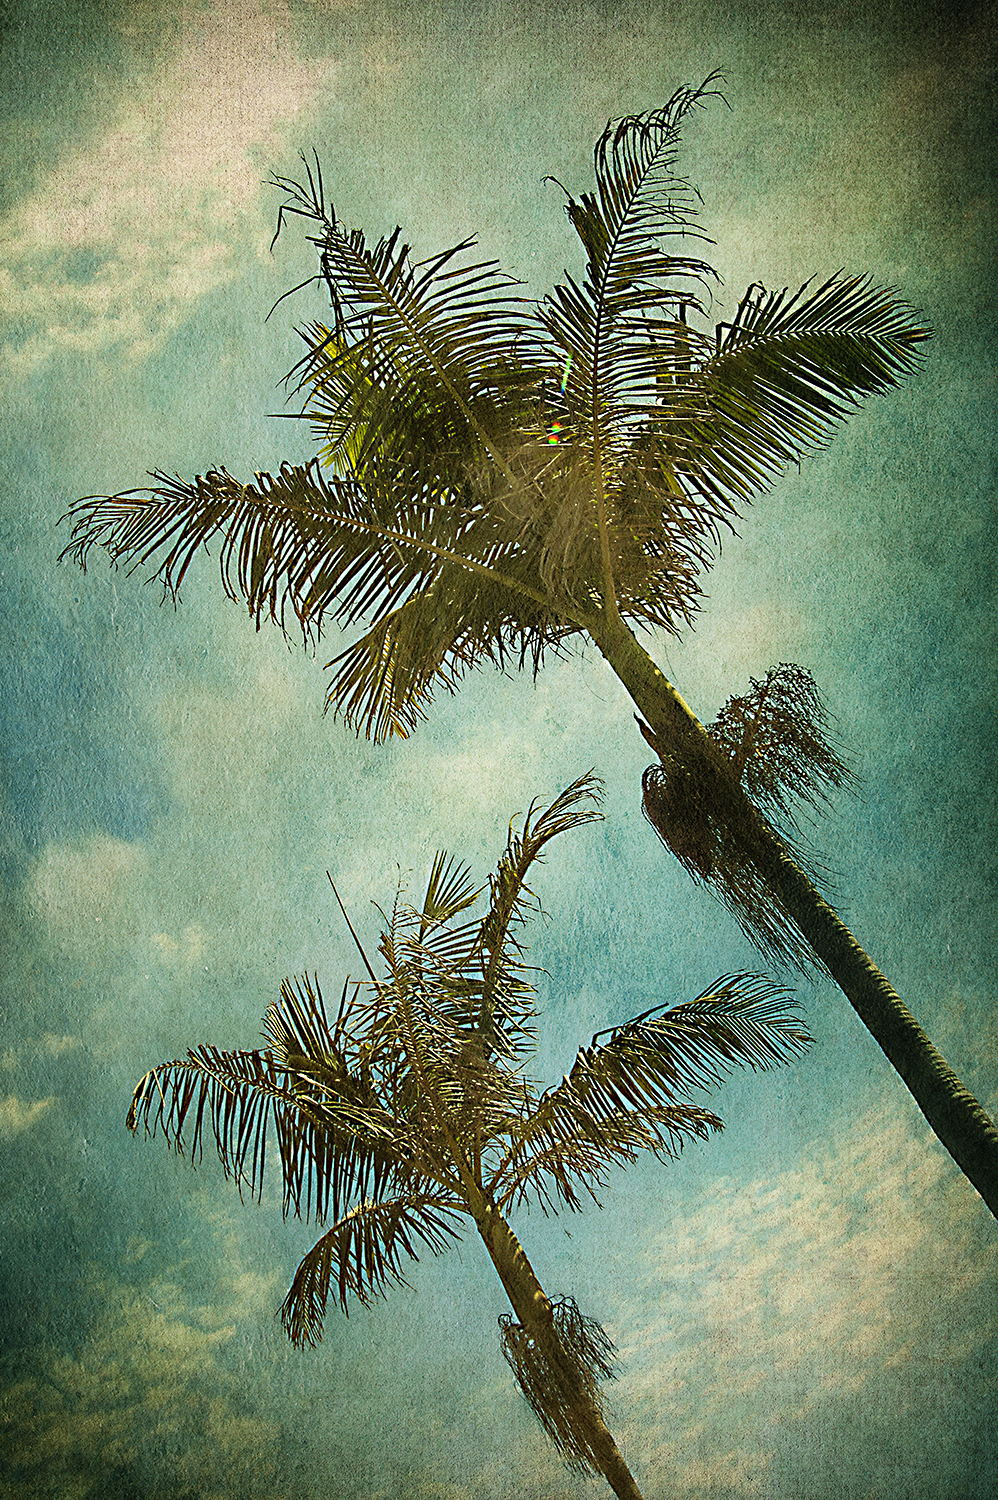 Painted Blue Palms